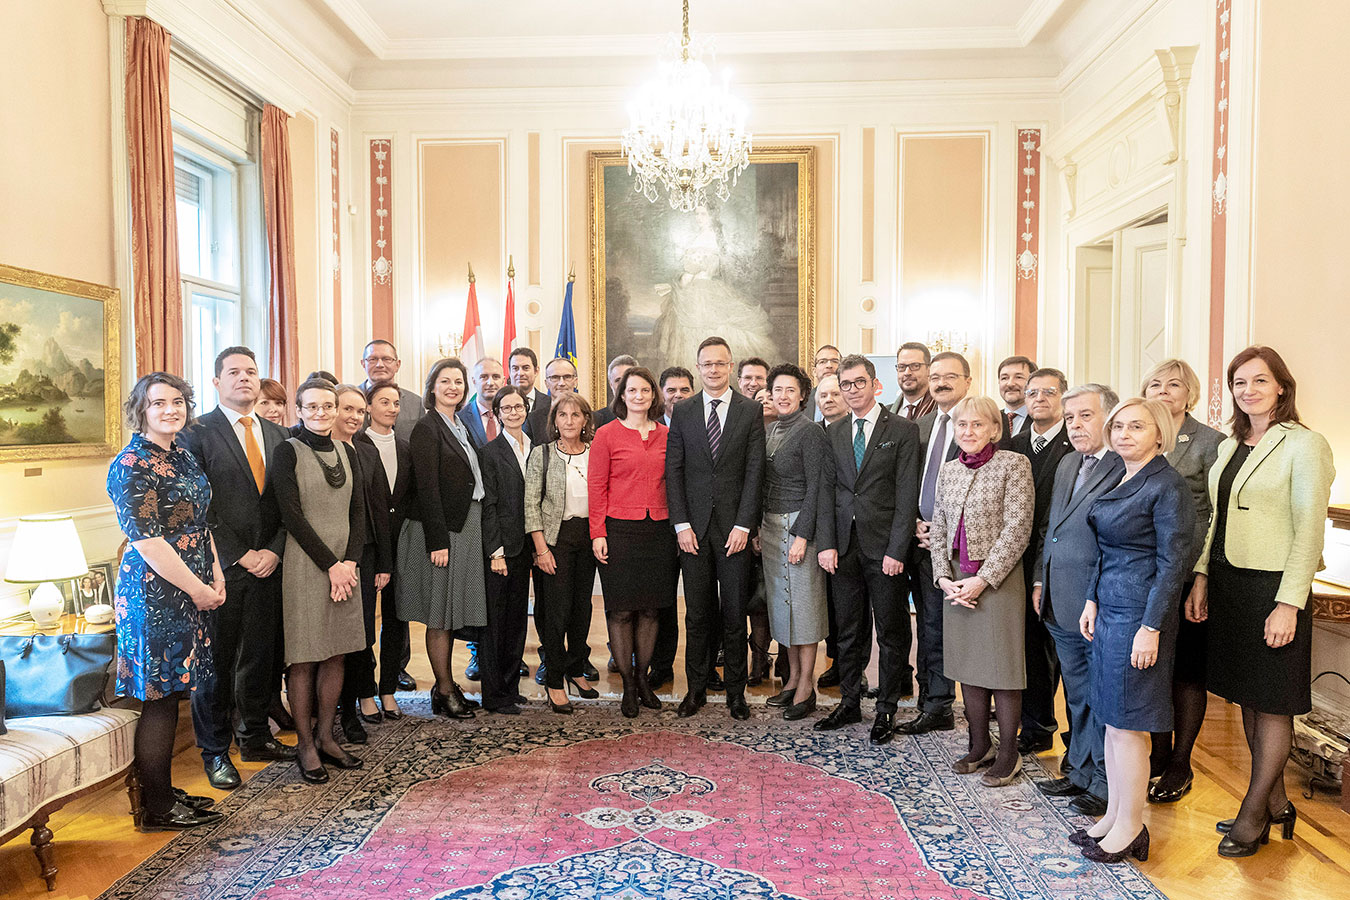 a-elisabeth-ellison-kramer-working-luncheon-austrian-presidency-2018-group.jpg